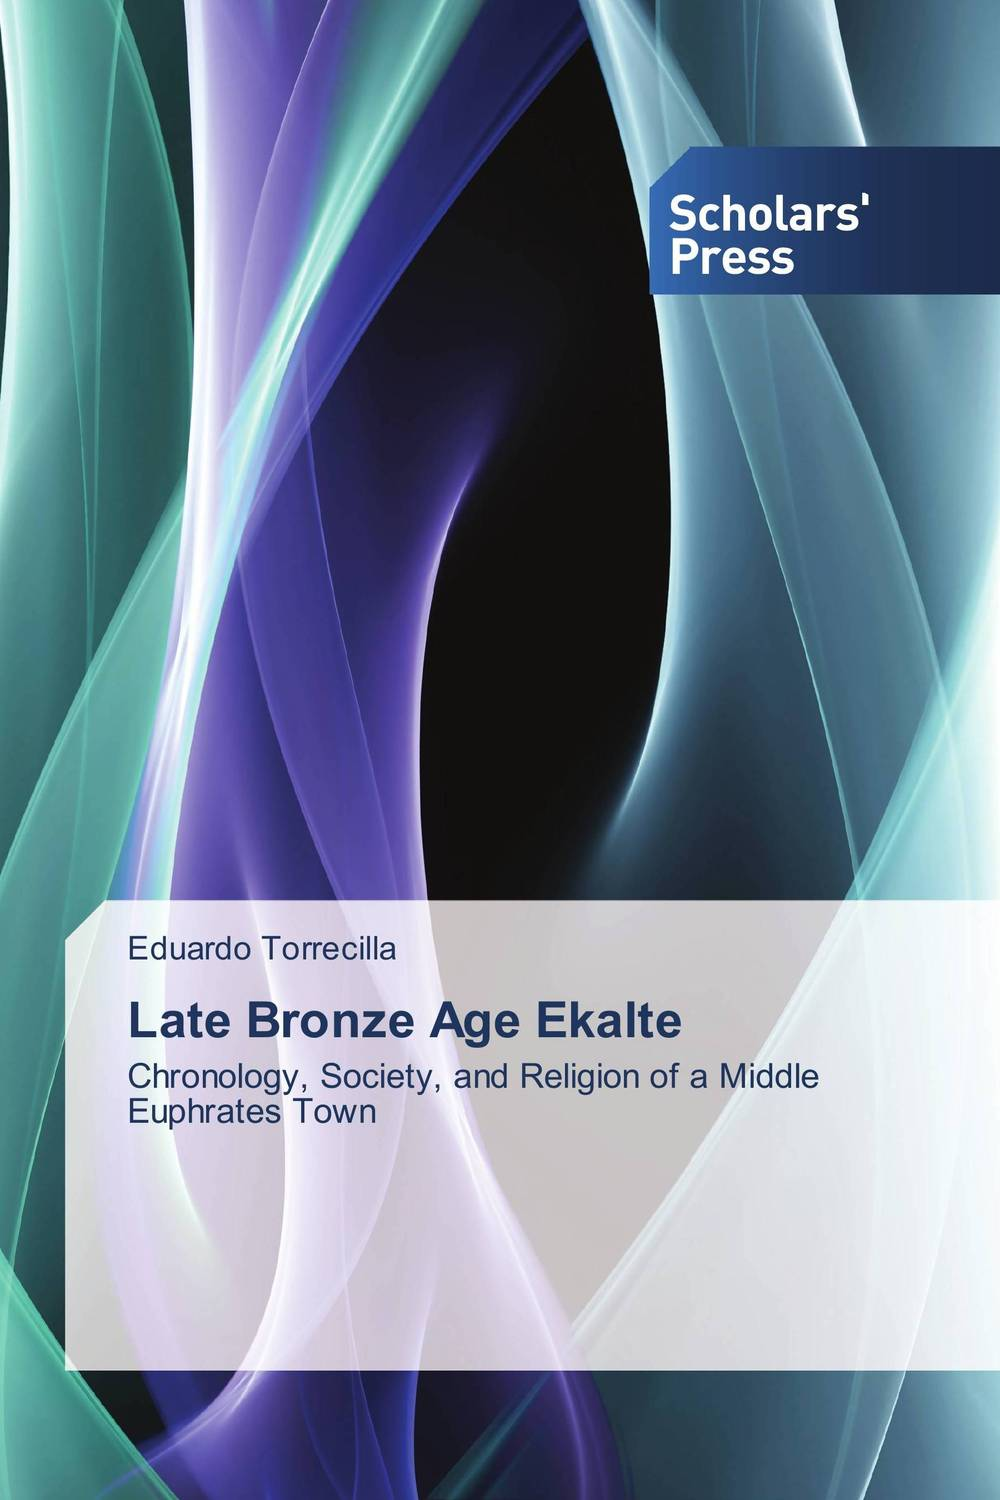 Late Bronze Age Ekalte middle to late bronze age transition in the southern urals russia